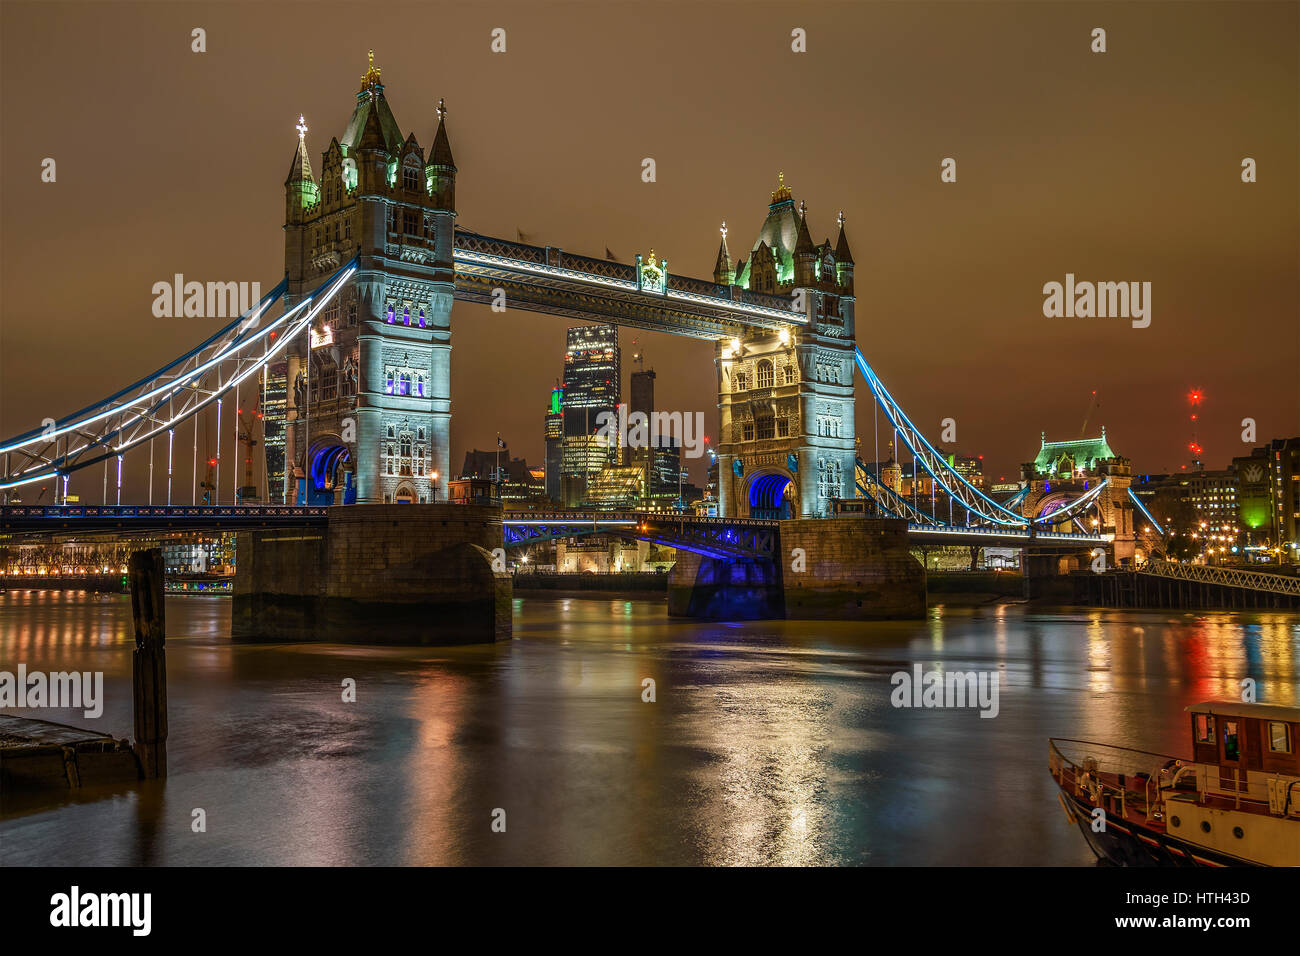 Aerial view of Tower Bridge, London, England, United Kingdom - Stock Image